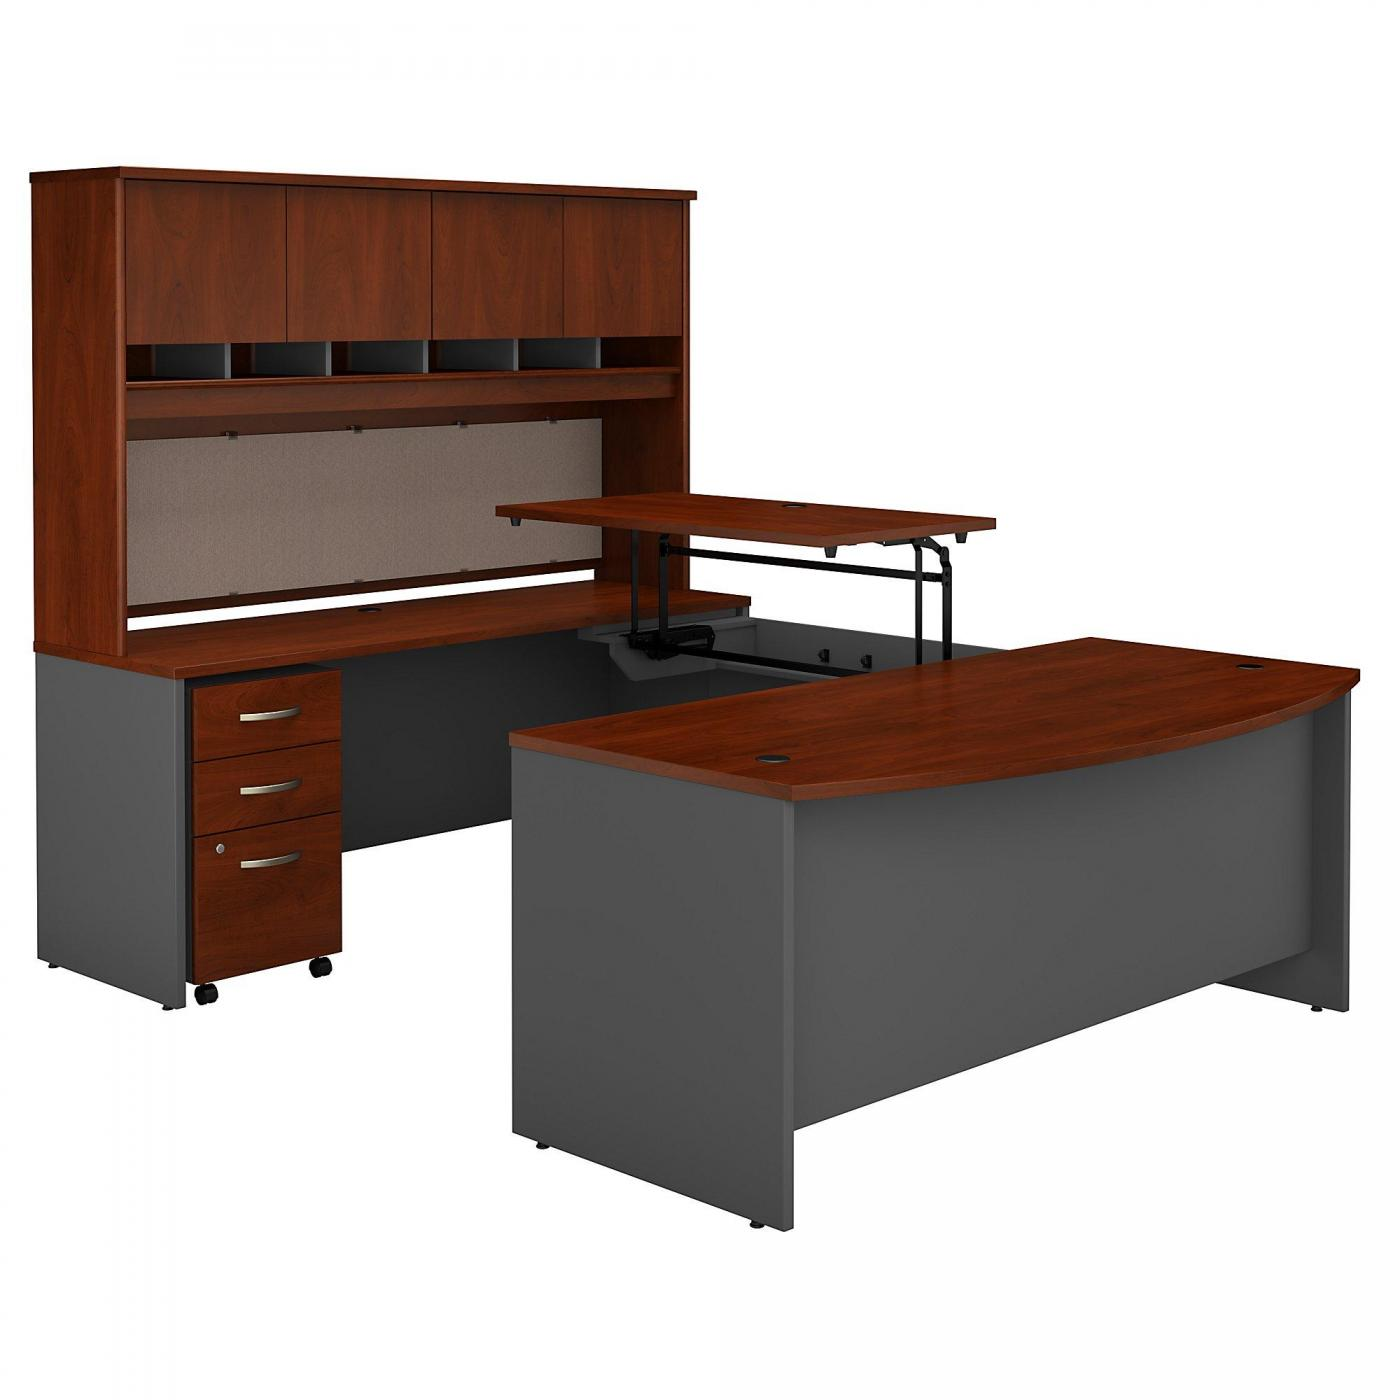 <font color=#c60><b>BUSH BUSINESS FURNITURE SERIES C 72W X 36D 3 POSITION SIT TO STAND BOW FRONT U SHAPED DESK WITH HUTCH AND MOBILE FILE CABINET. FREE SHIPPING</font></b>